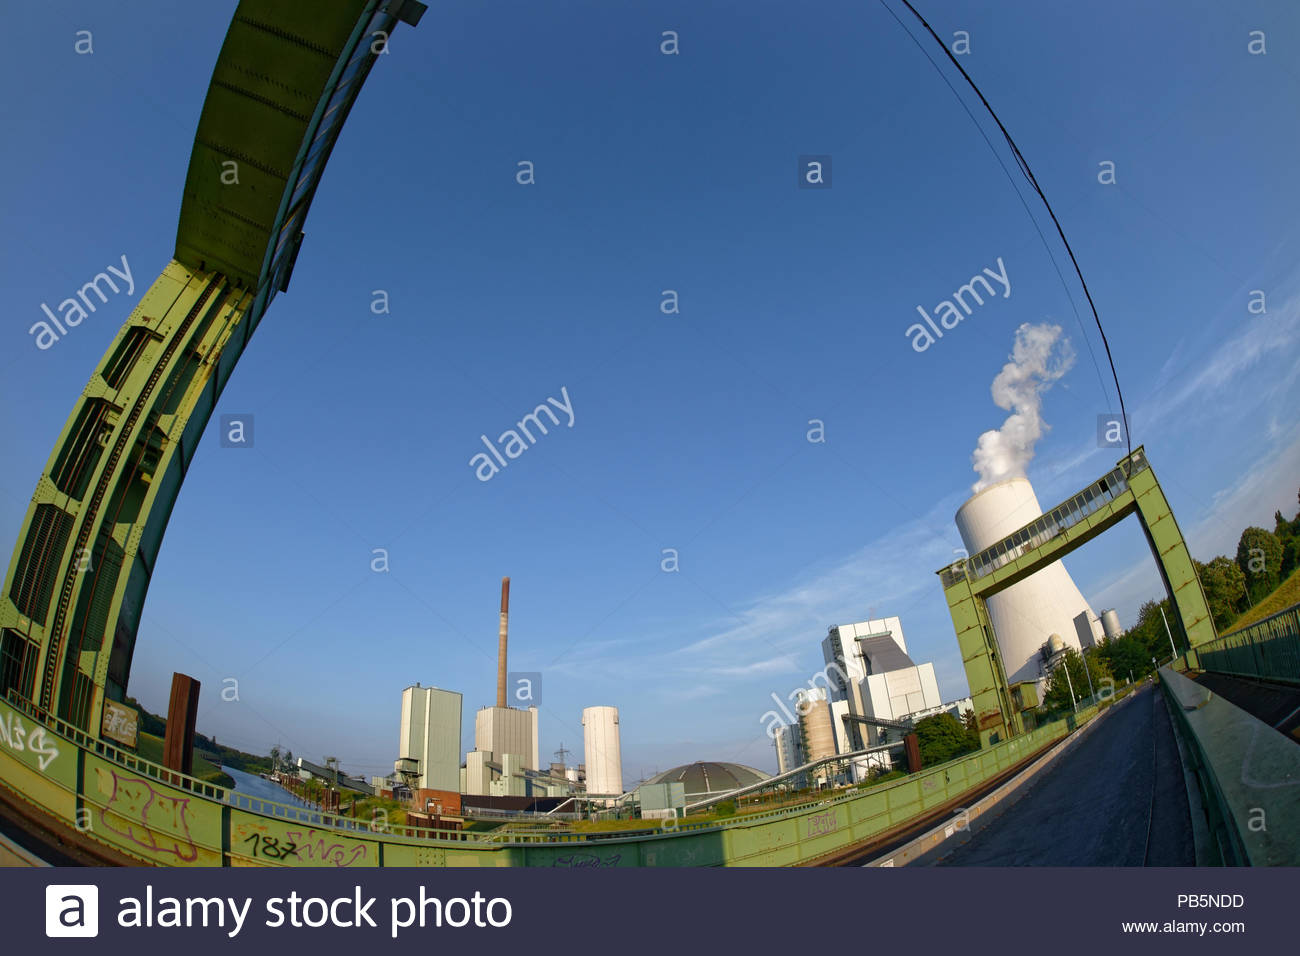 Duisburg-Walsum disused lift bridge inlet coal harbour historic industrial heritage monument STEAG EVN coal fired power station cooling tower steam - Stock Image